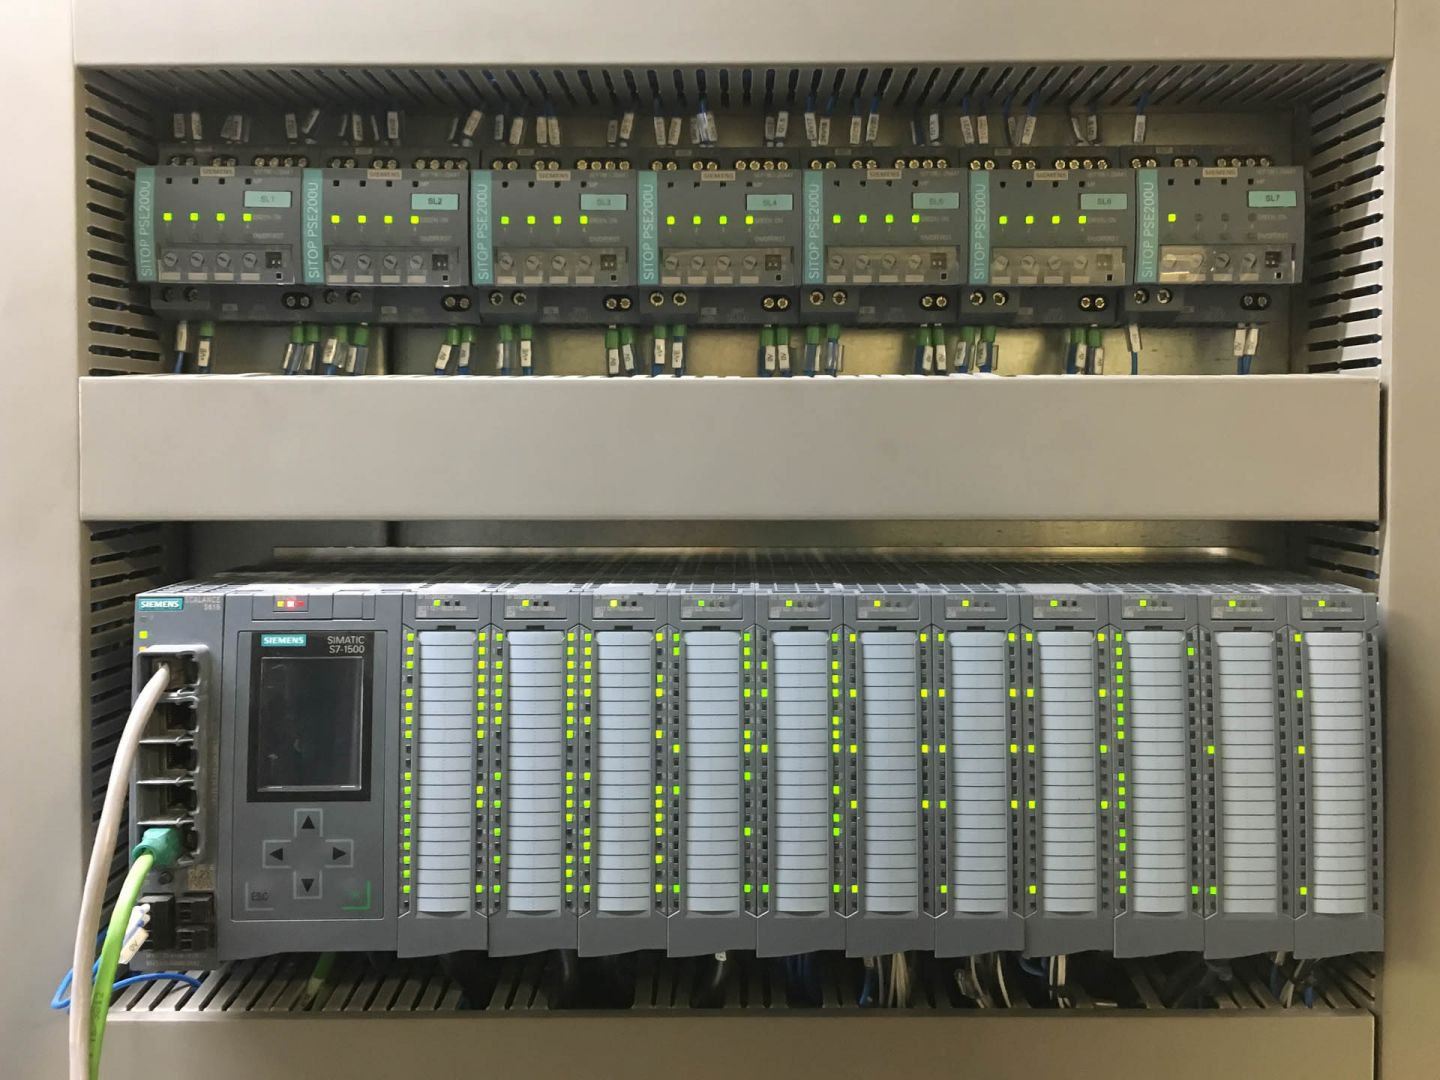 PLC systems by Siemens